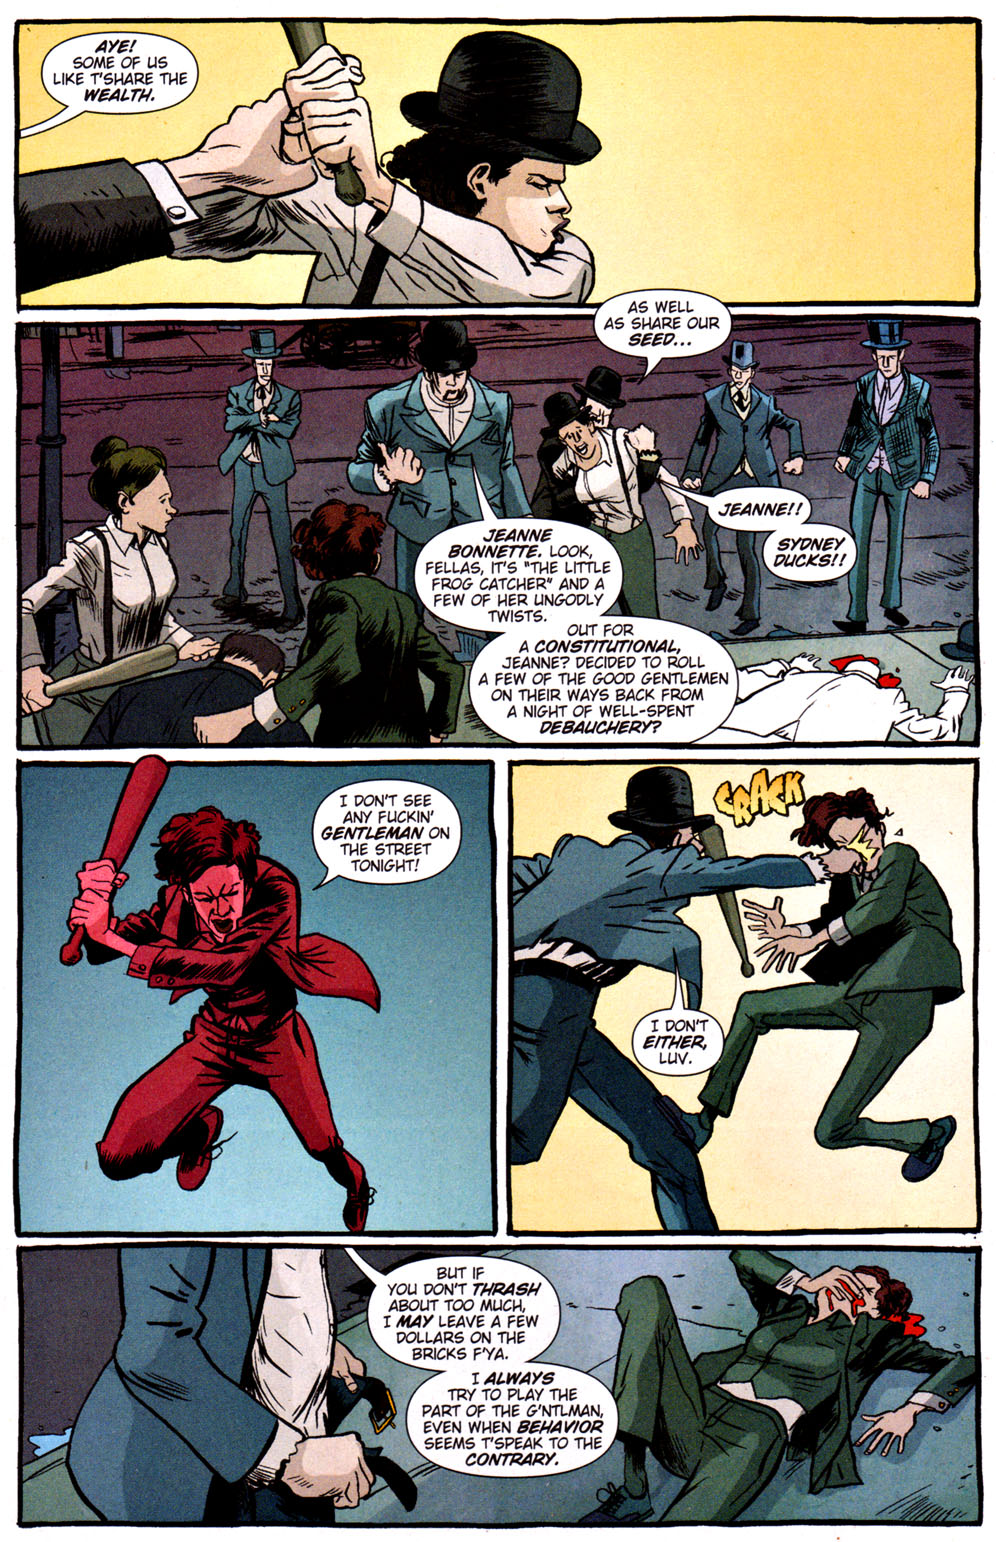 Read online Caper comic -  Issue #3 - 8